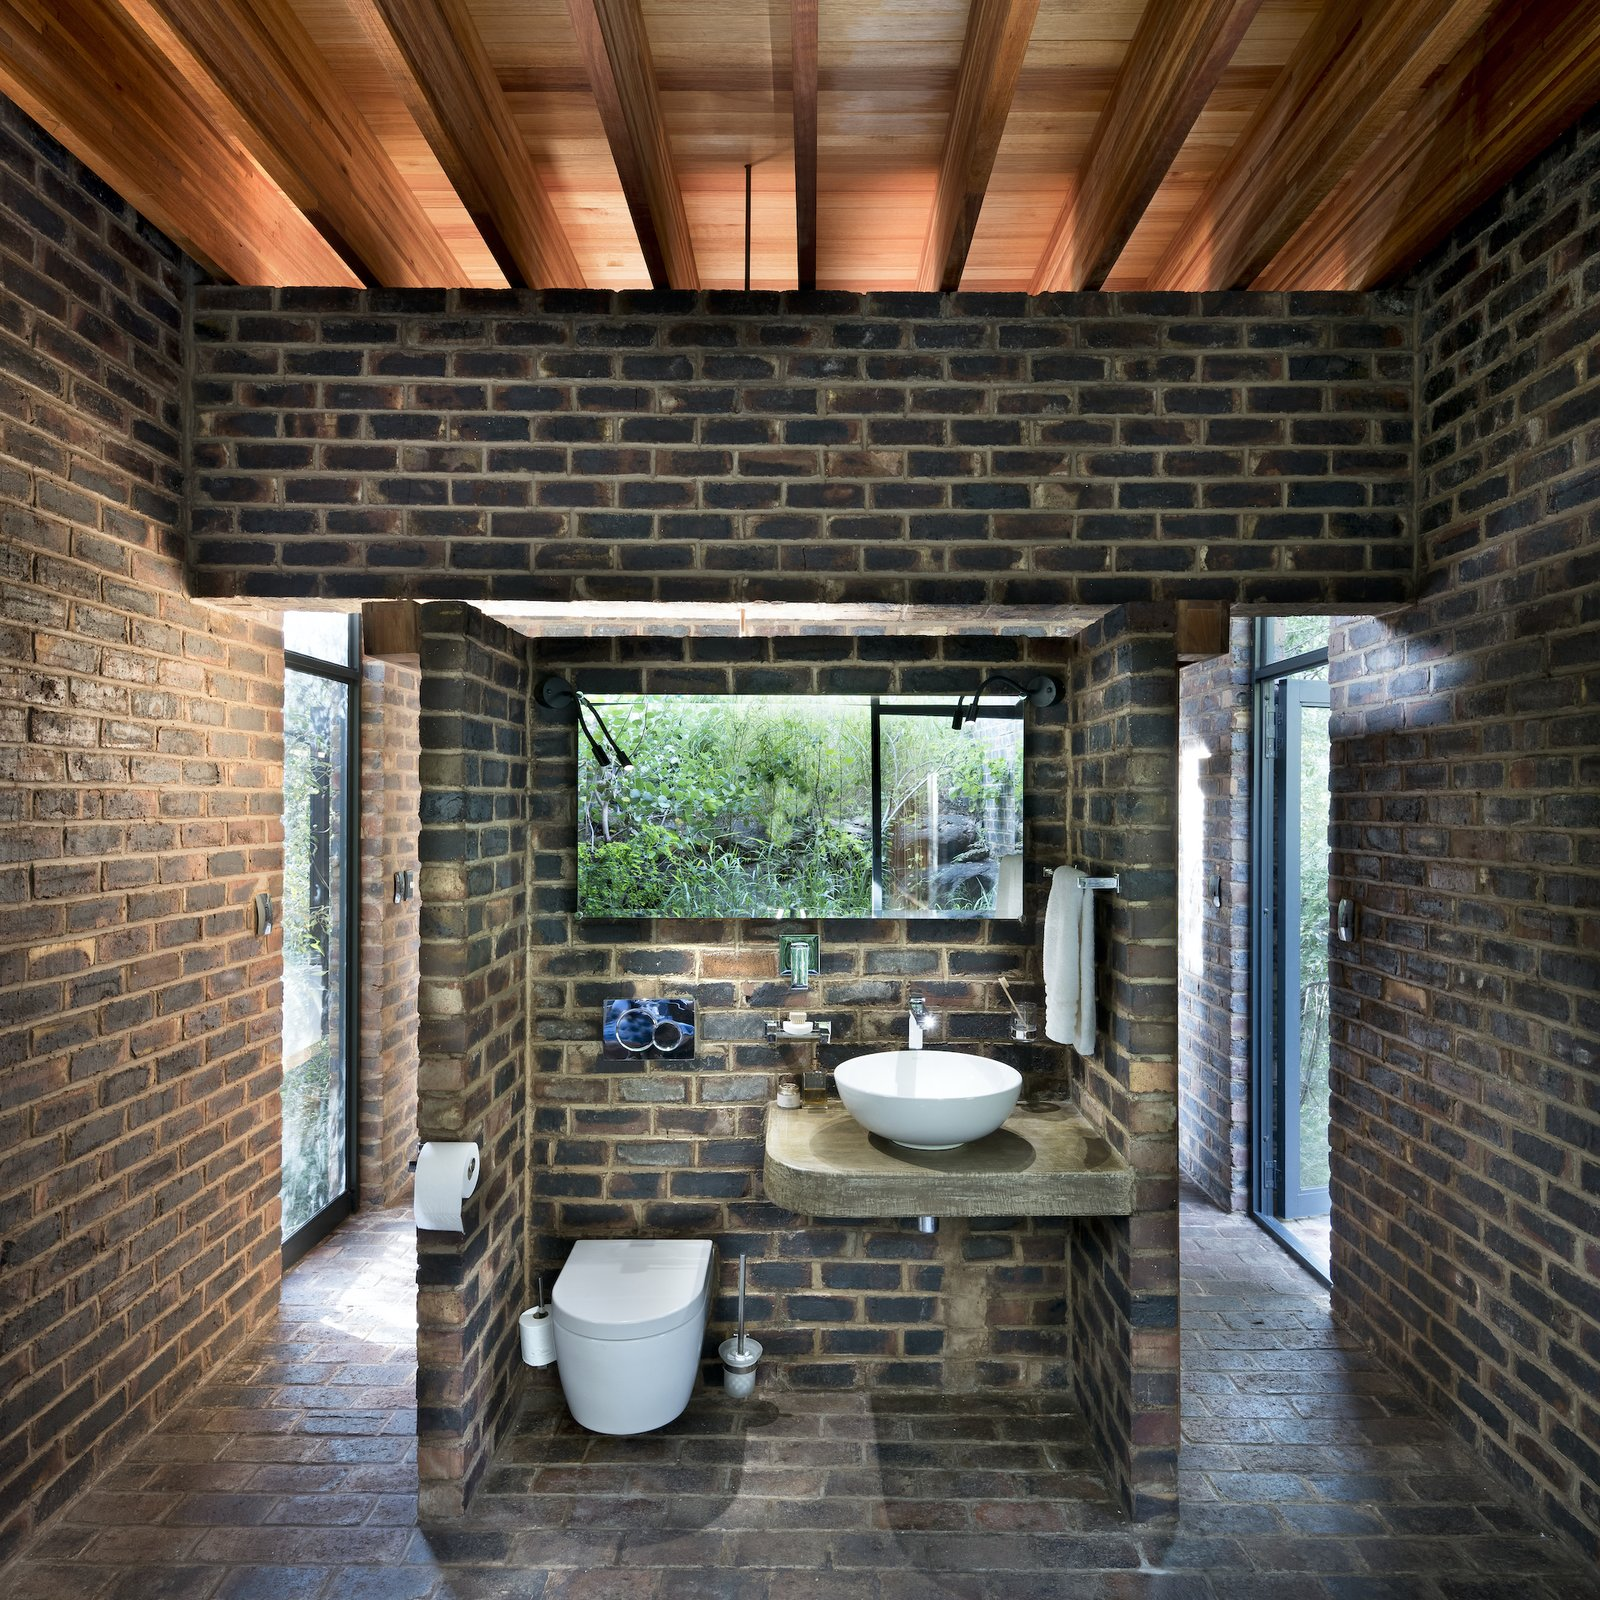 Bathroom of House of the Tall Chimneys by Frankie Pappas.